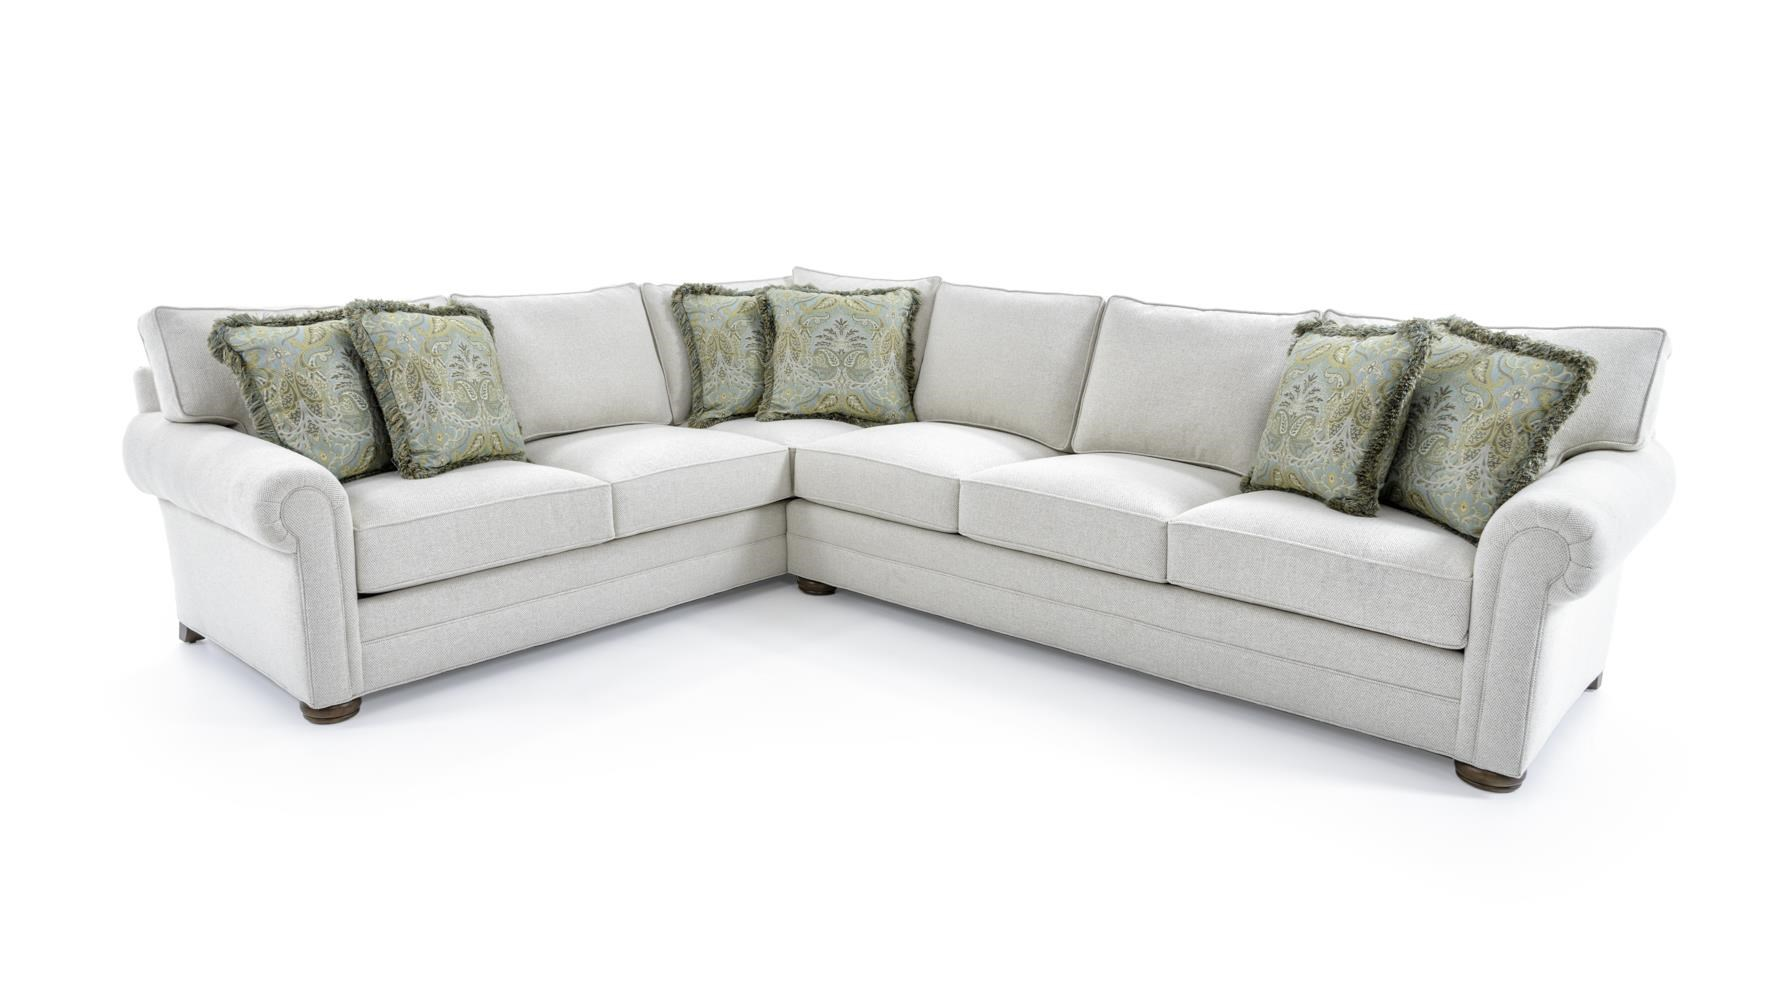 Century Cornerstone  Customizable Sectional Sofa with Lawson Arms - Item Number: LTD-7600-43+52 71343L10